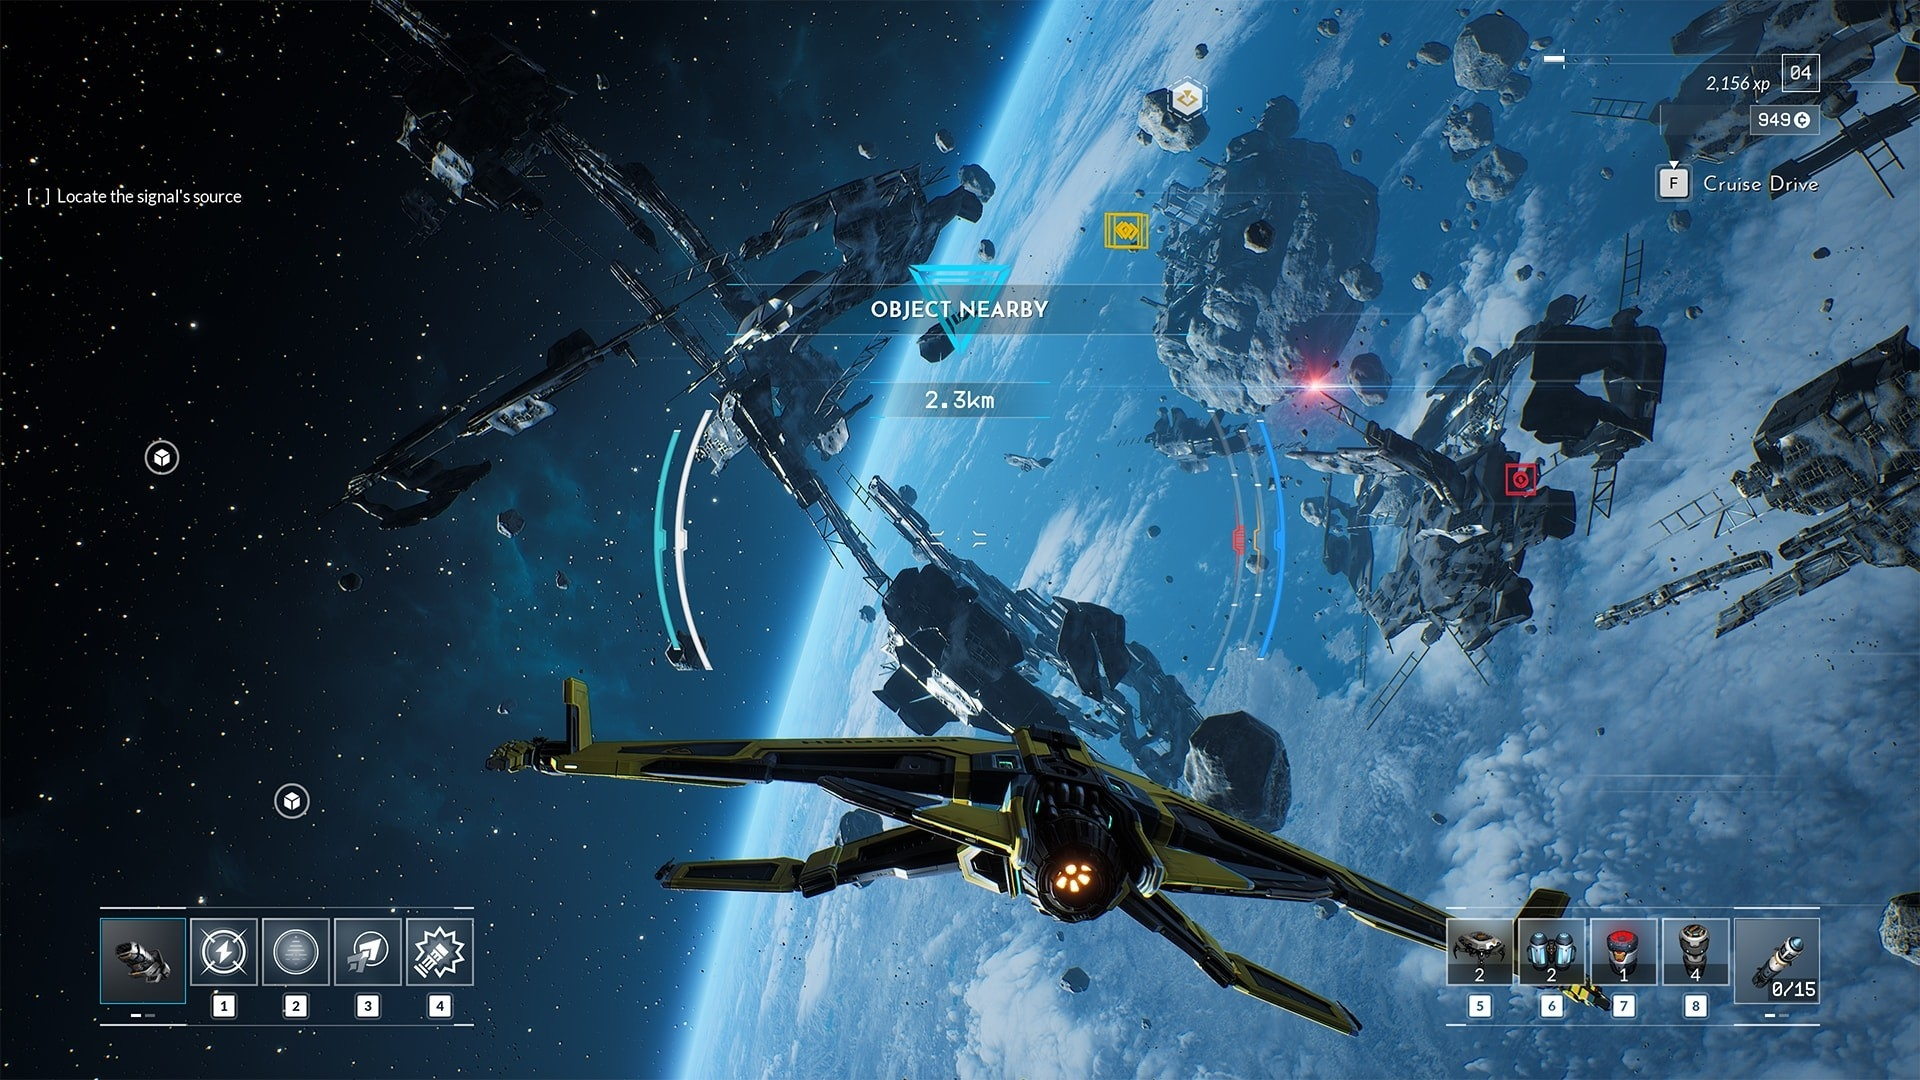 Rockfish Games Delays Everspace 2 Early Access Until Next Year Due To Cyberpunk 2077 Delay